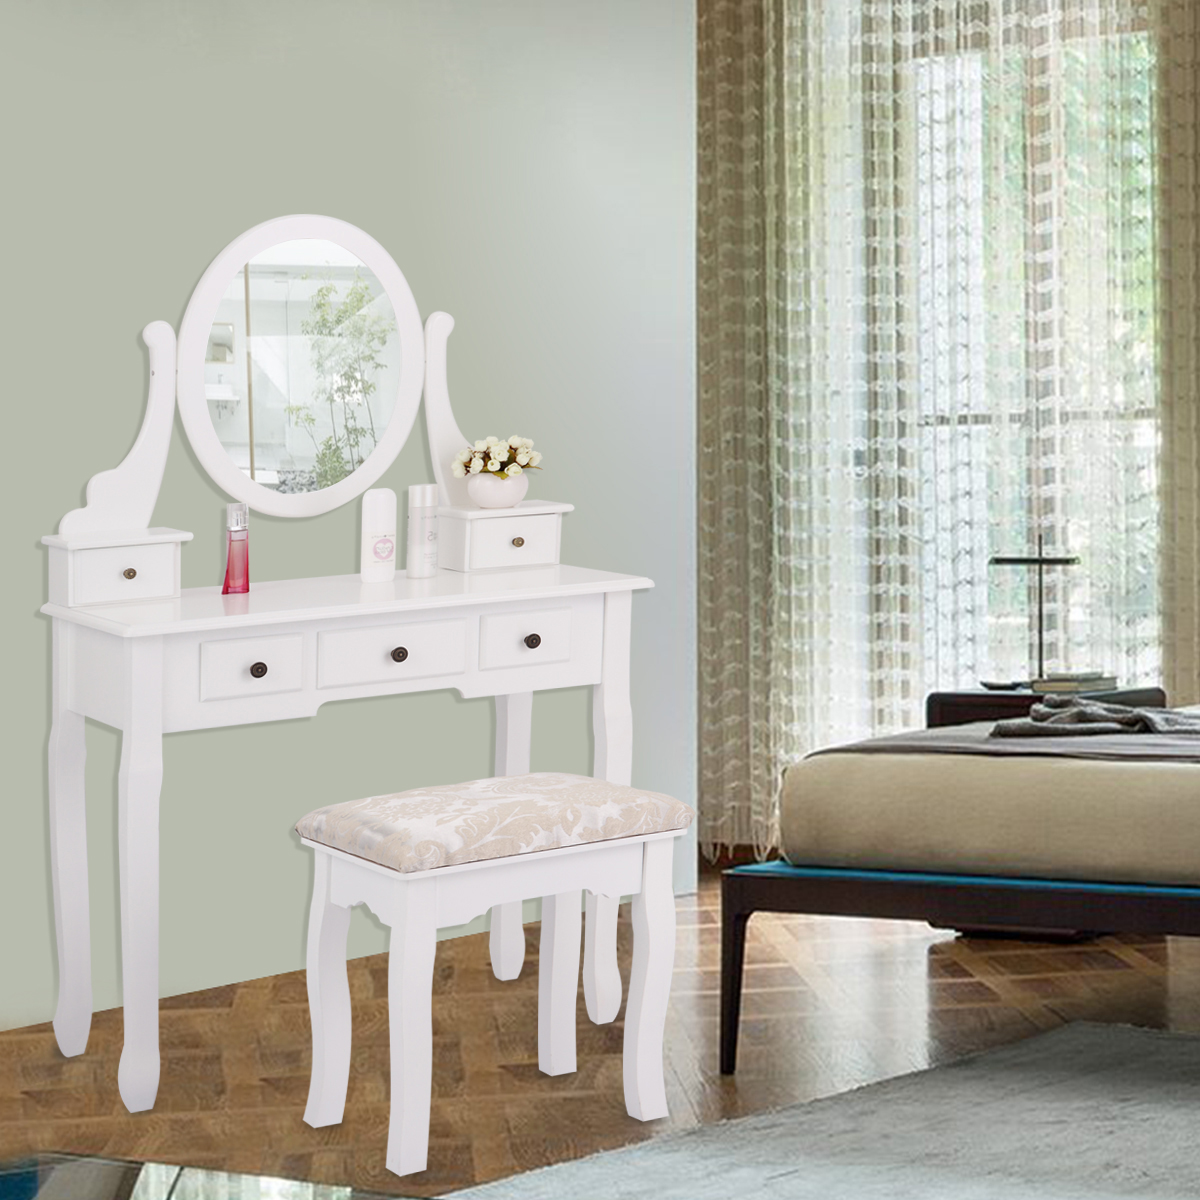 Jaxpety Wood Makeup Vanity Table Set w/ Oval Mirror and S...